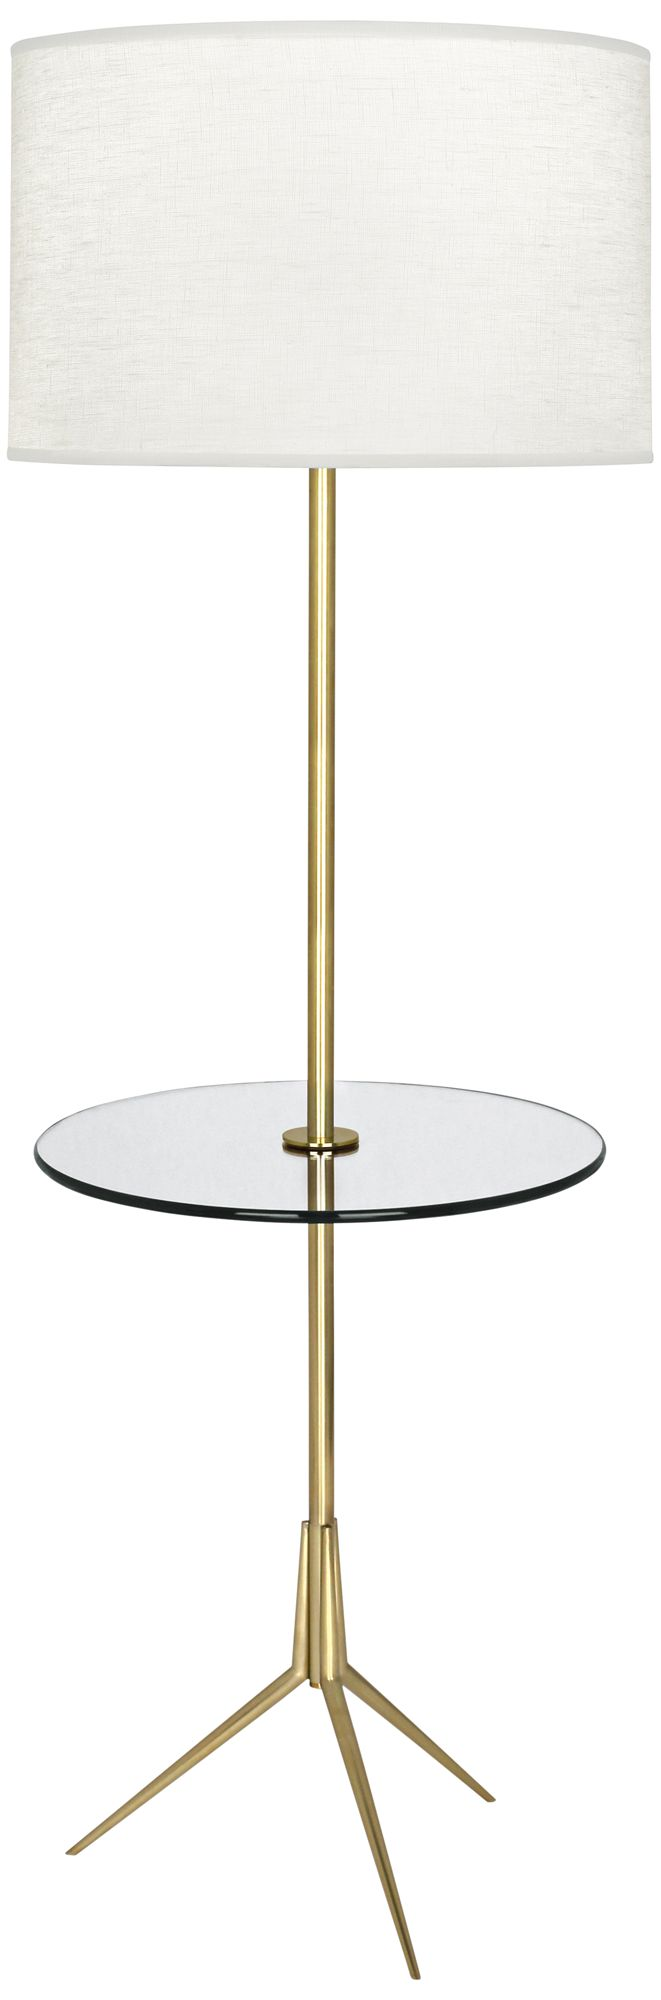 Attractive Robert Abbey Martin Modern Brass Floor Lamp With Glass Tray